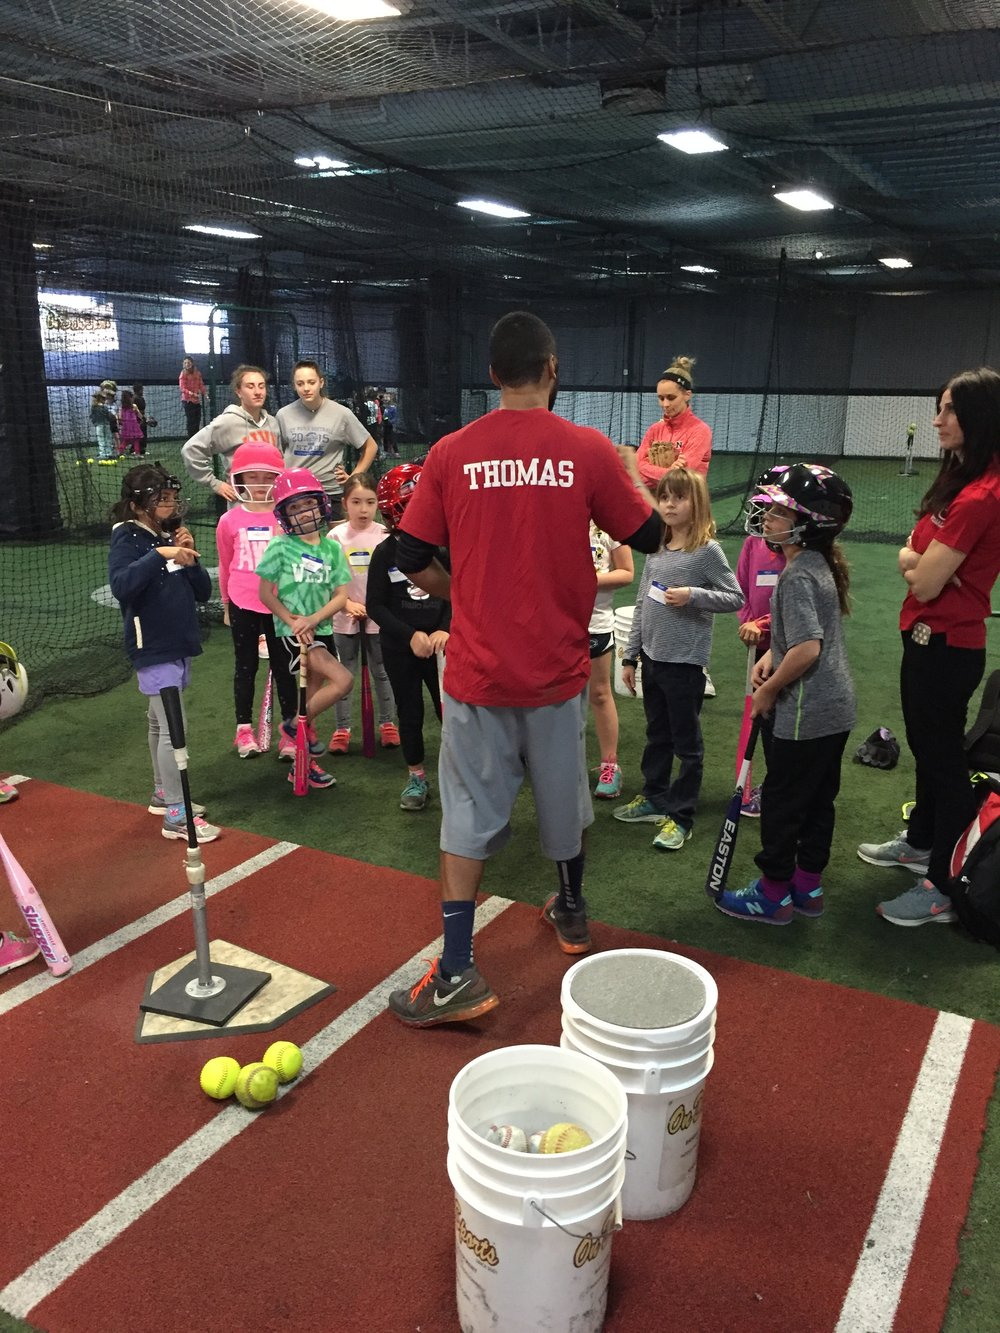 Jon Thomas Softball Clinic.jpg